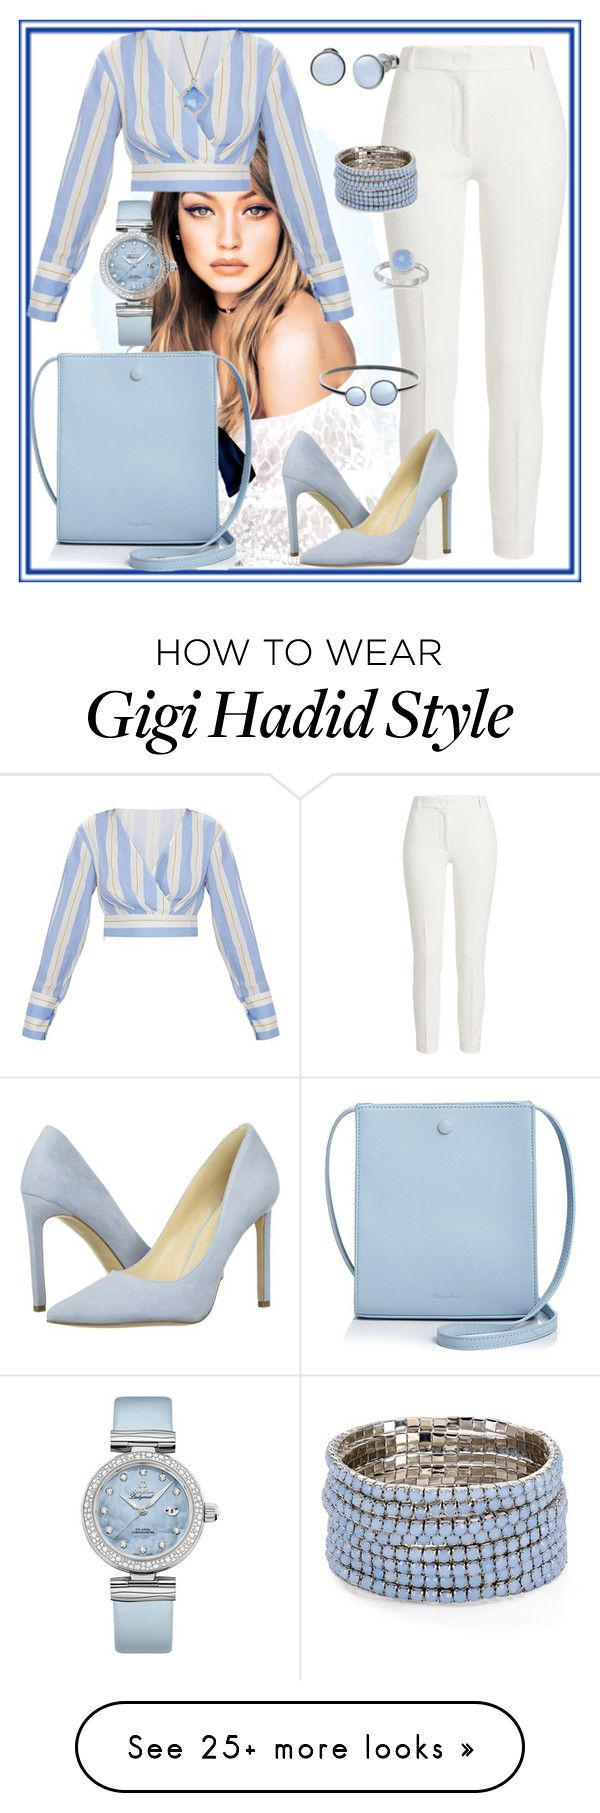 """Camden"" by sally-taylor-winter on Polyvore featuring Joseph, Steven Alan, Nine West, Skagen, OMEGA, Aqua and Kendra Scott"